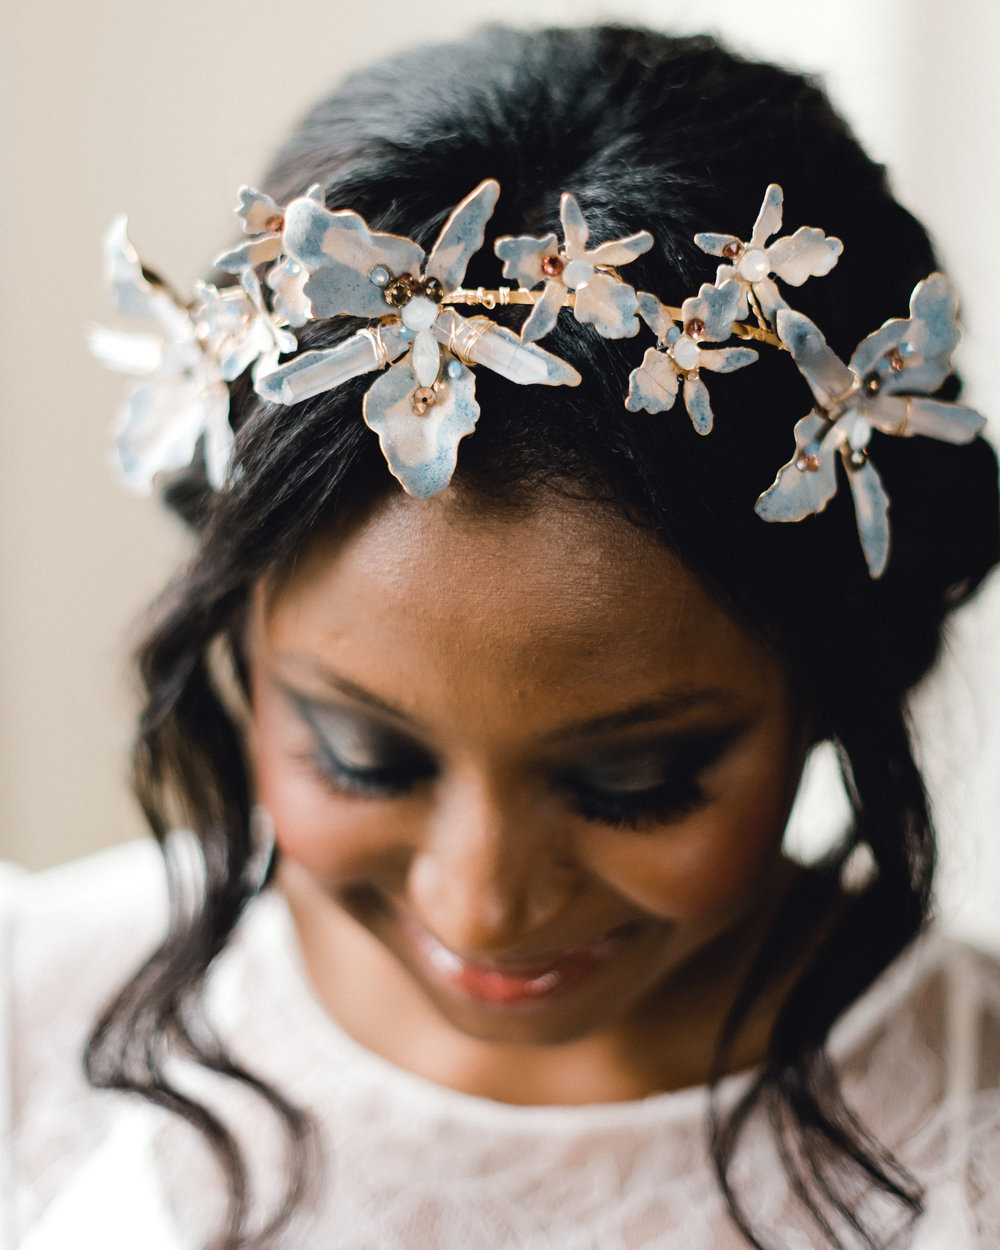 Wedding hair updo with hair accessory for Pablo Neruda enchanting garden styled shoot planned by Exhale Events. Get inspired at exhale-events.com!